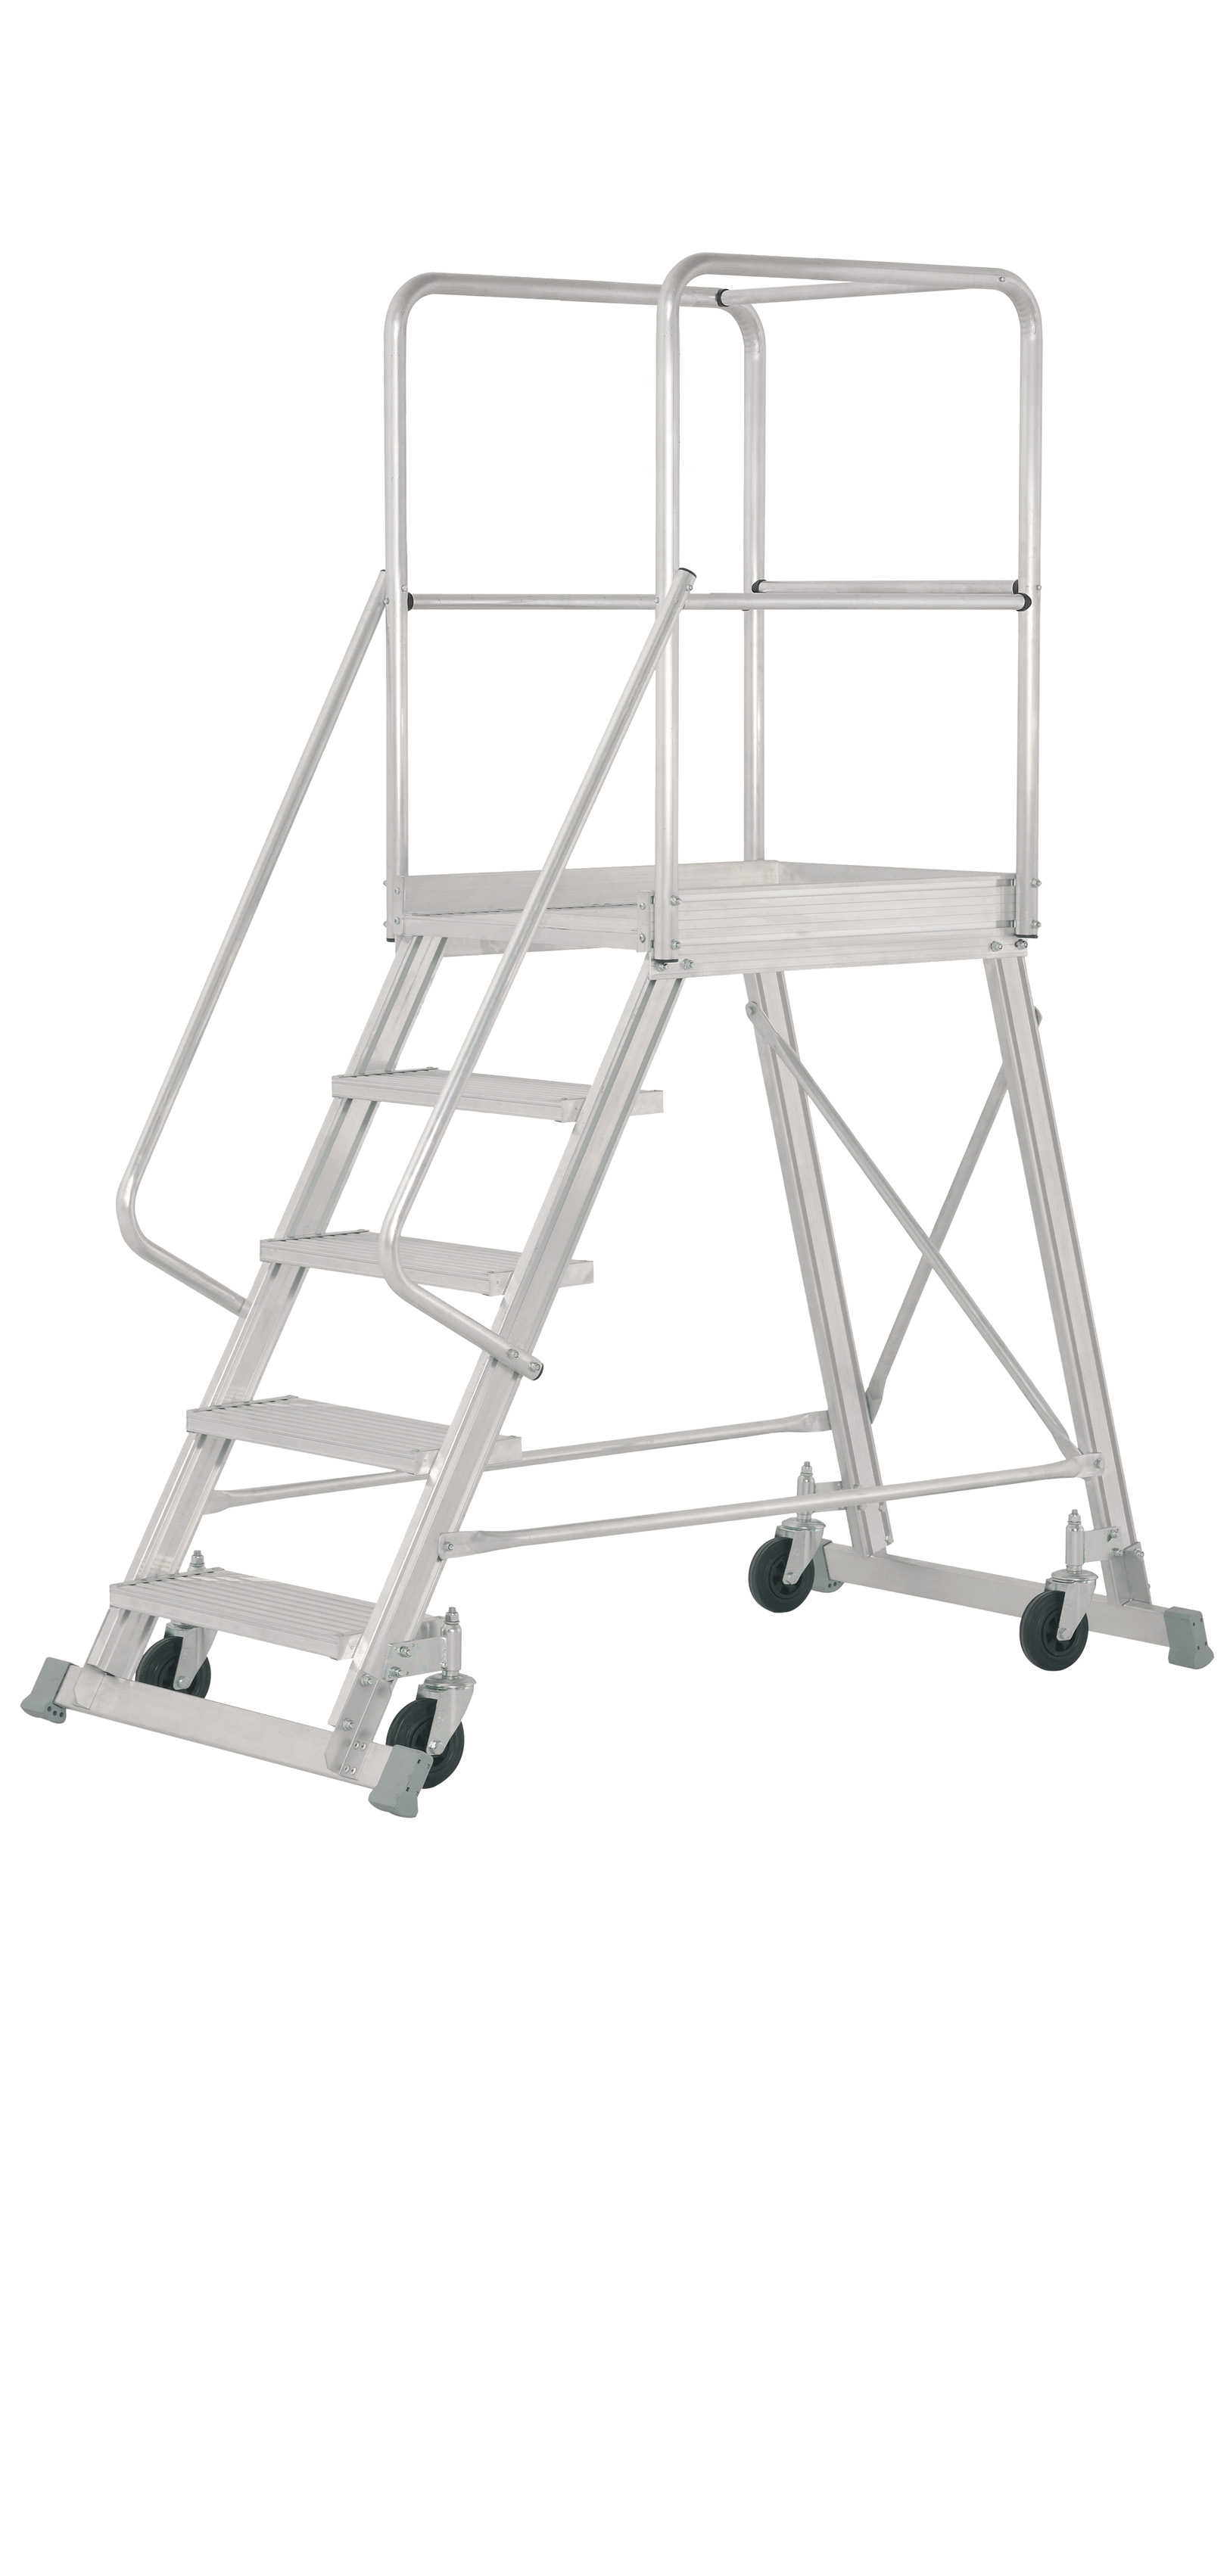 Aluminium Folding Rolling Platform Ladder Escaleras Arizona